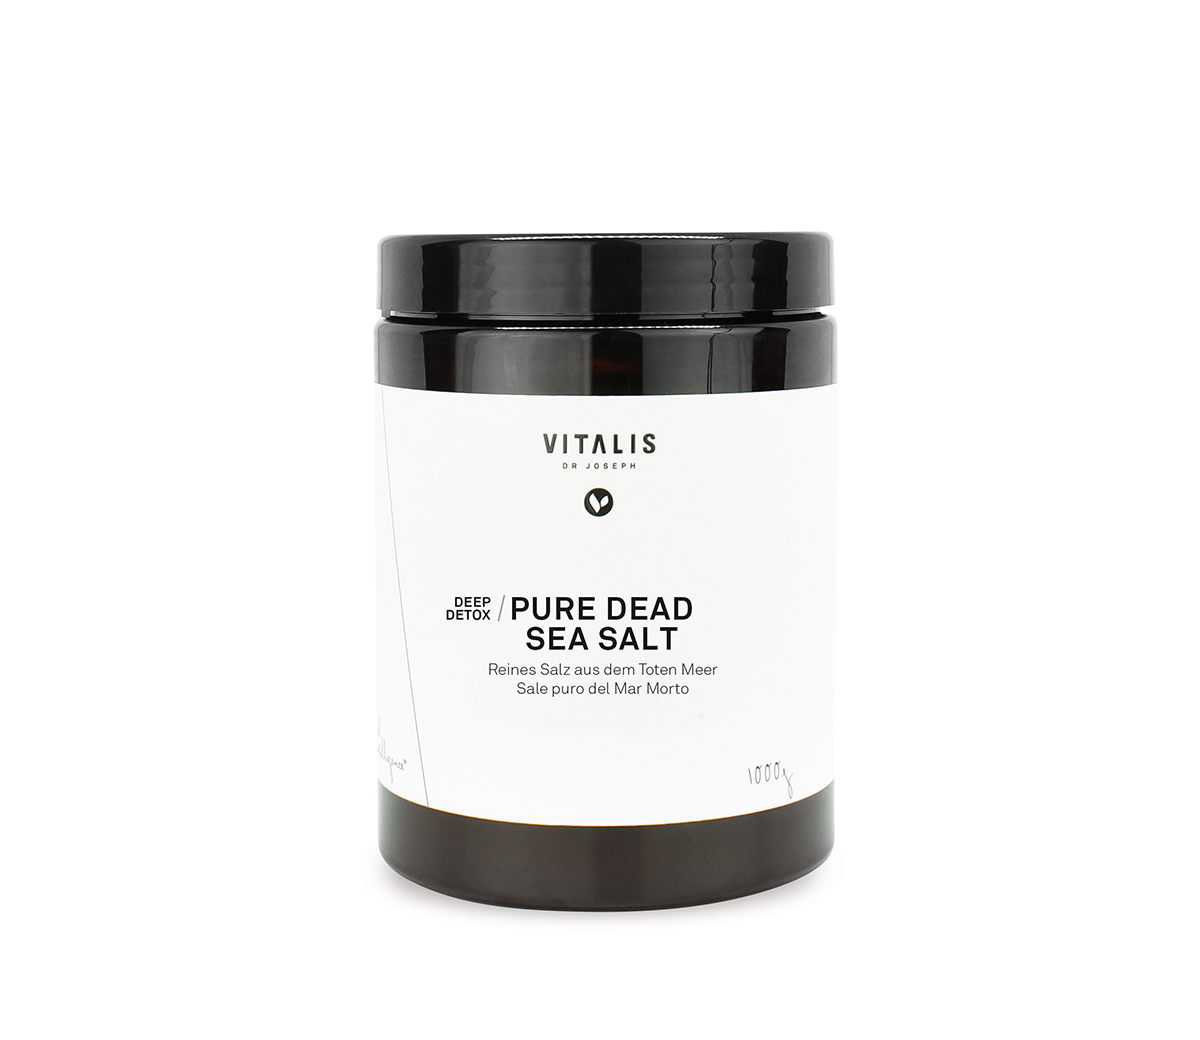 PURE DEAD SEA SALT, 1000g